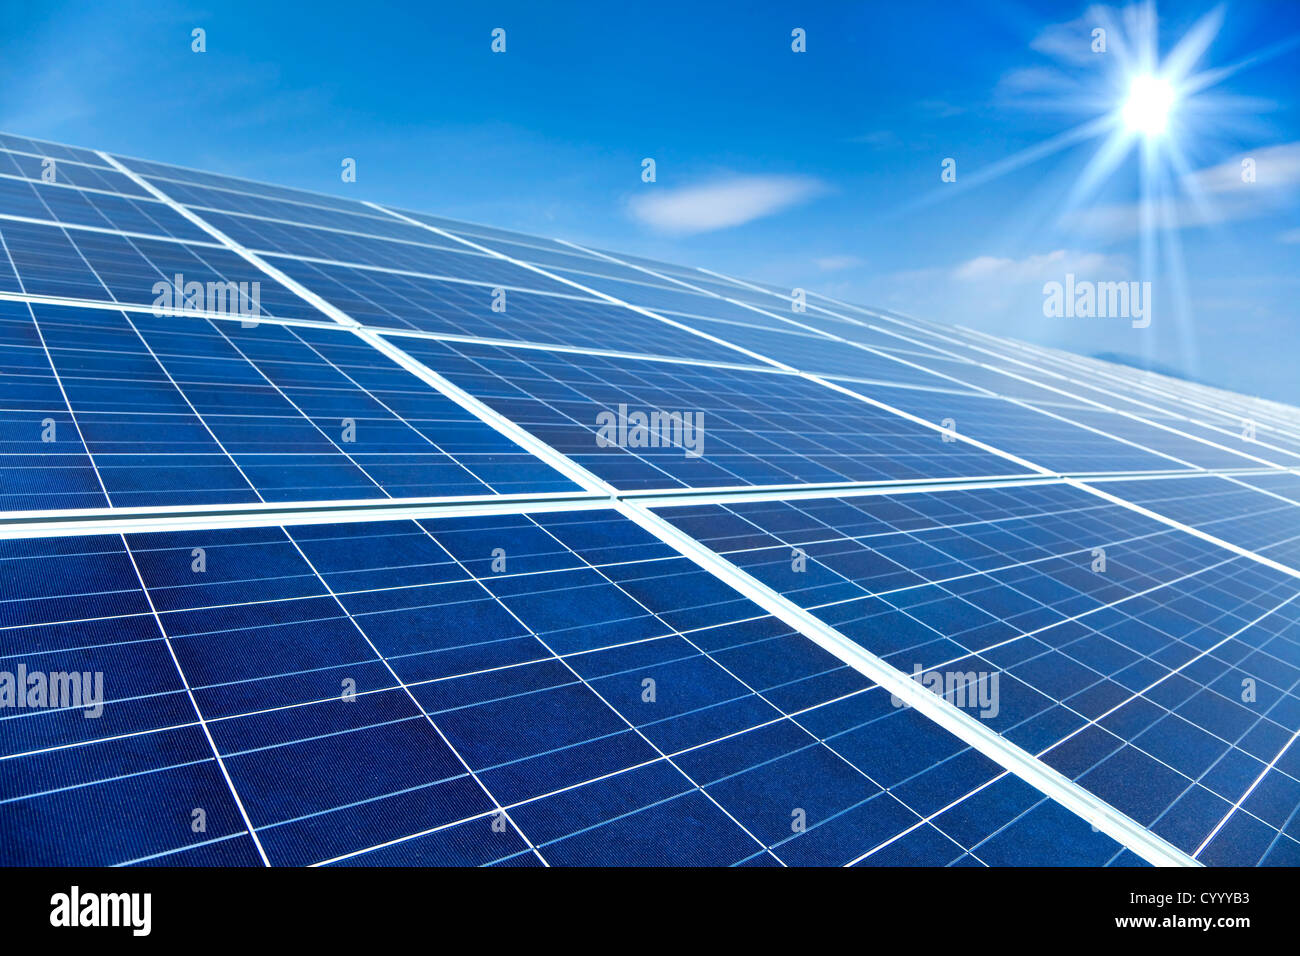 Closeup of Solar Panels with sunlight and blue sky background - Stock Image